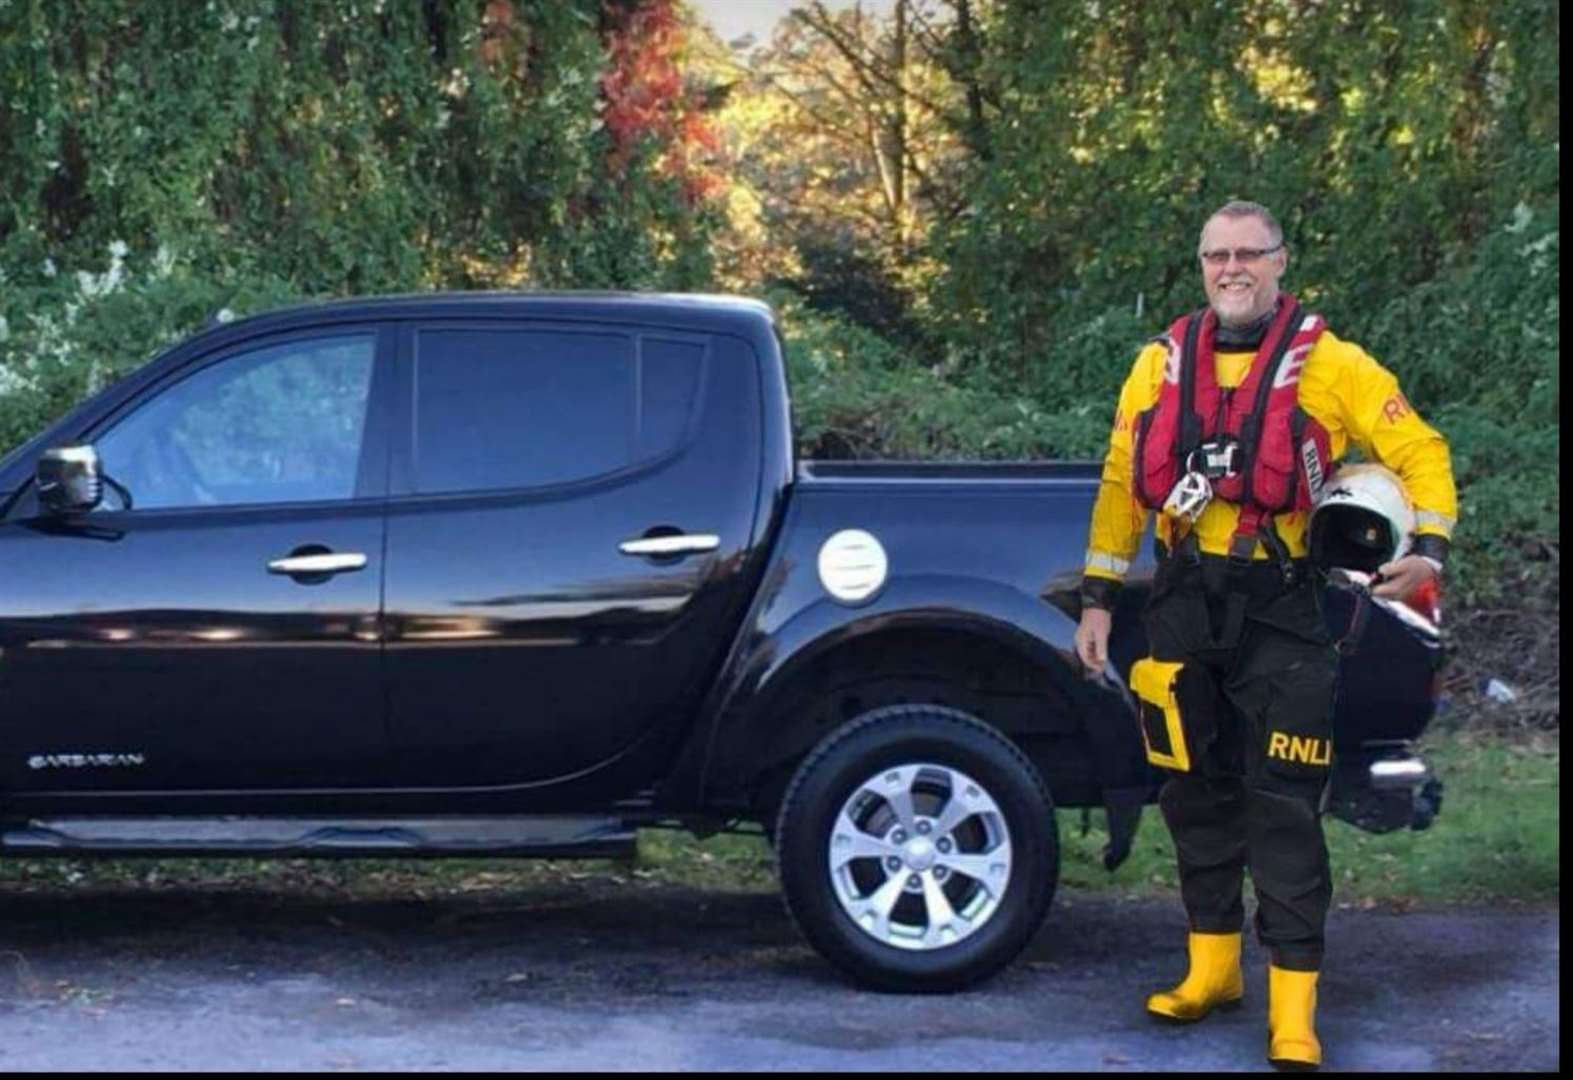 Thieves steal RNLI volunteer's truck